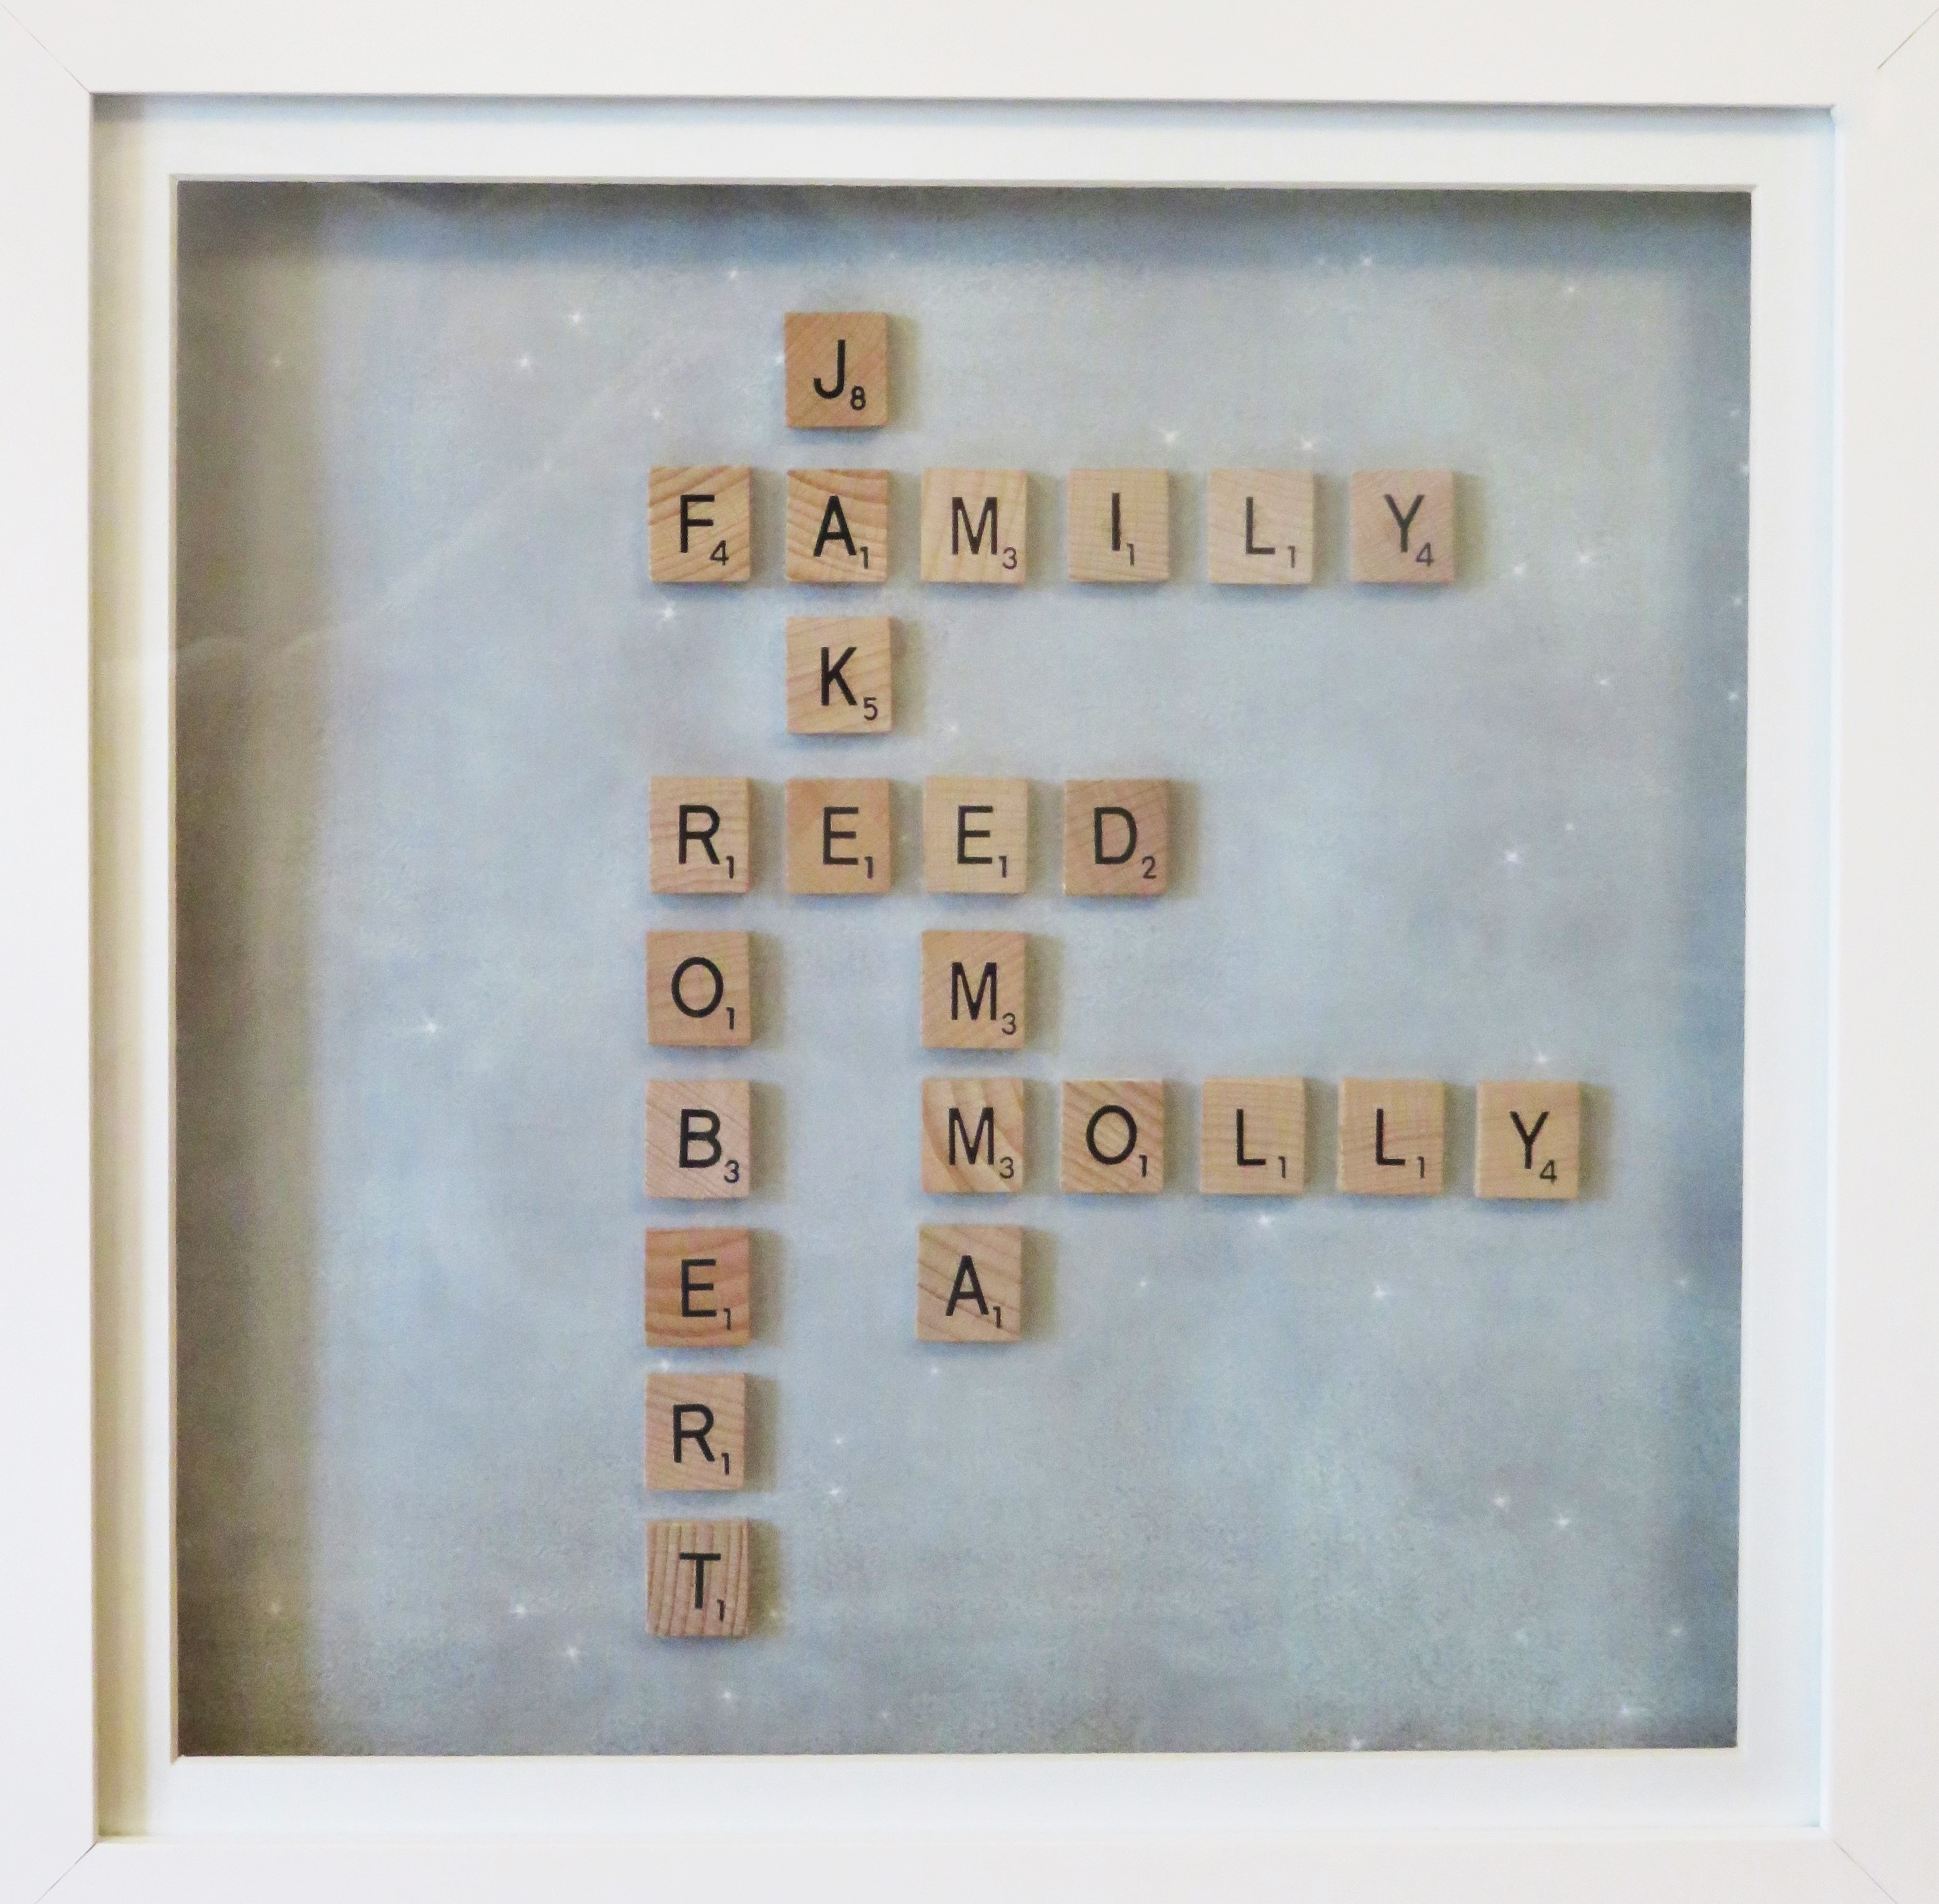 the completed scrabble picture